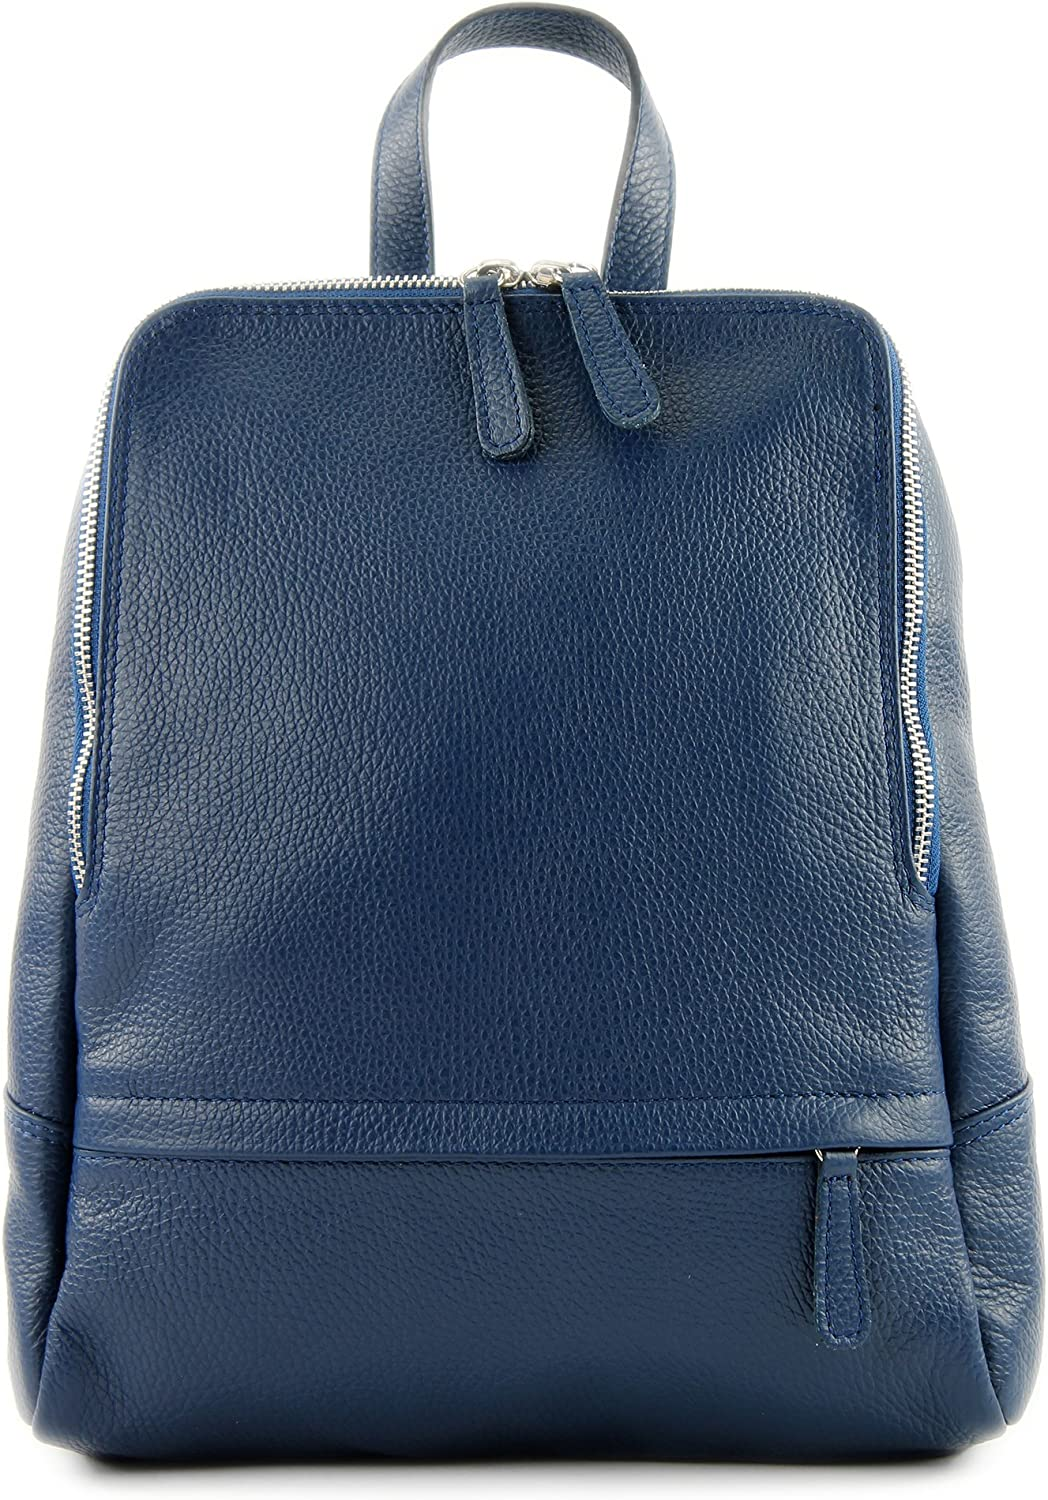 modamoda de - ital. Leather Backpack Ladies Backpack Rucksack Bag Citybag Leather T138 Jeans Blue